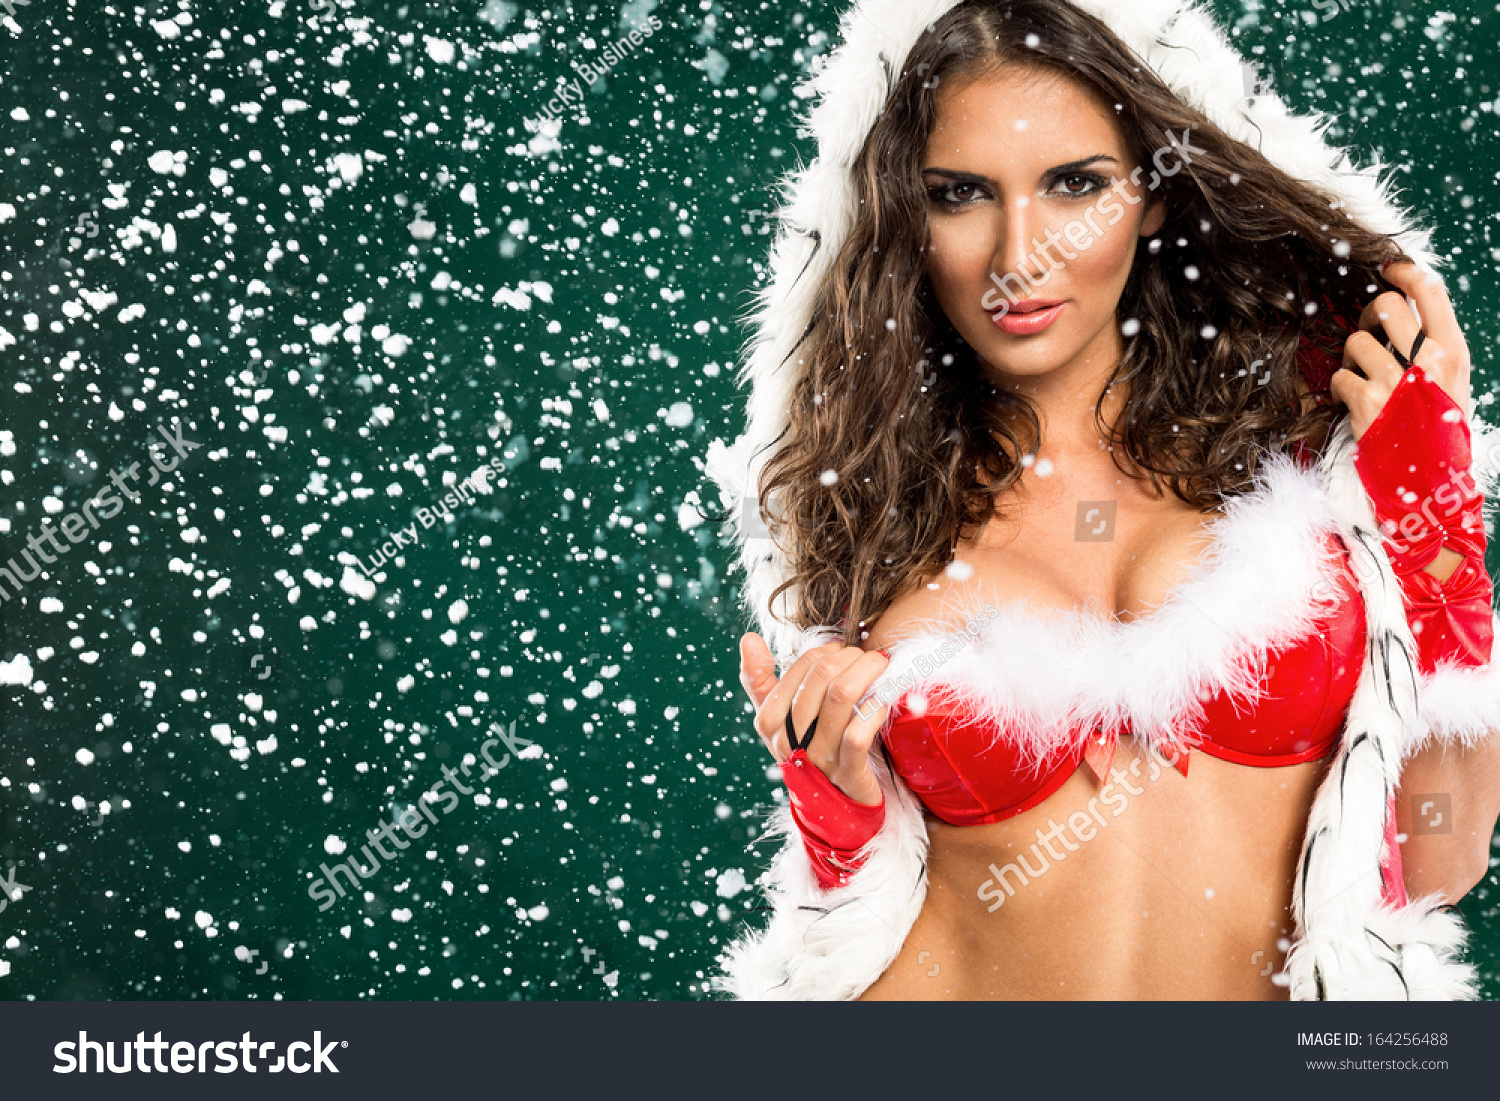 Merry christmas naked girl Portrait Beautiful Sexy Girl Santa Clothes Stock Photo Edit Now 164256488